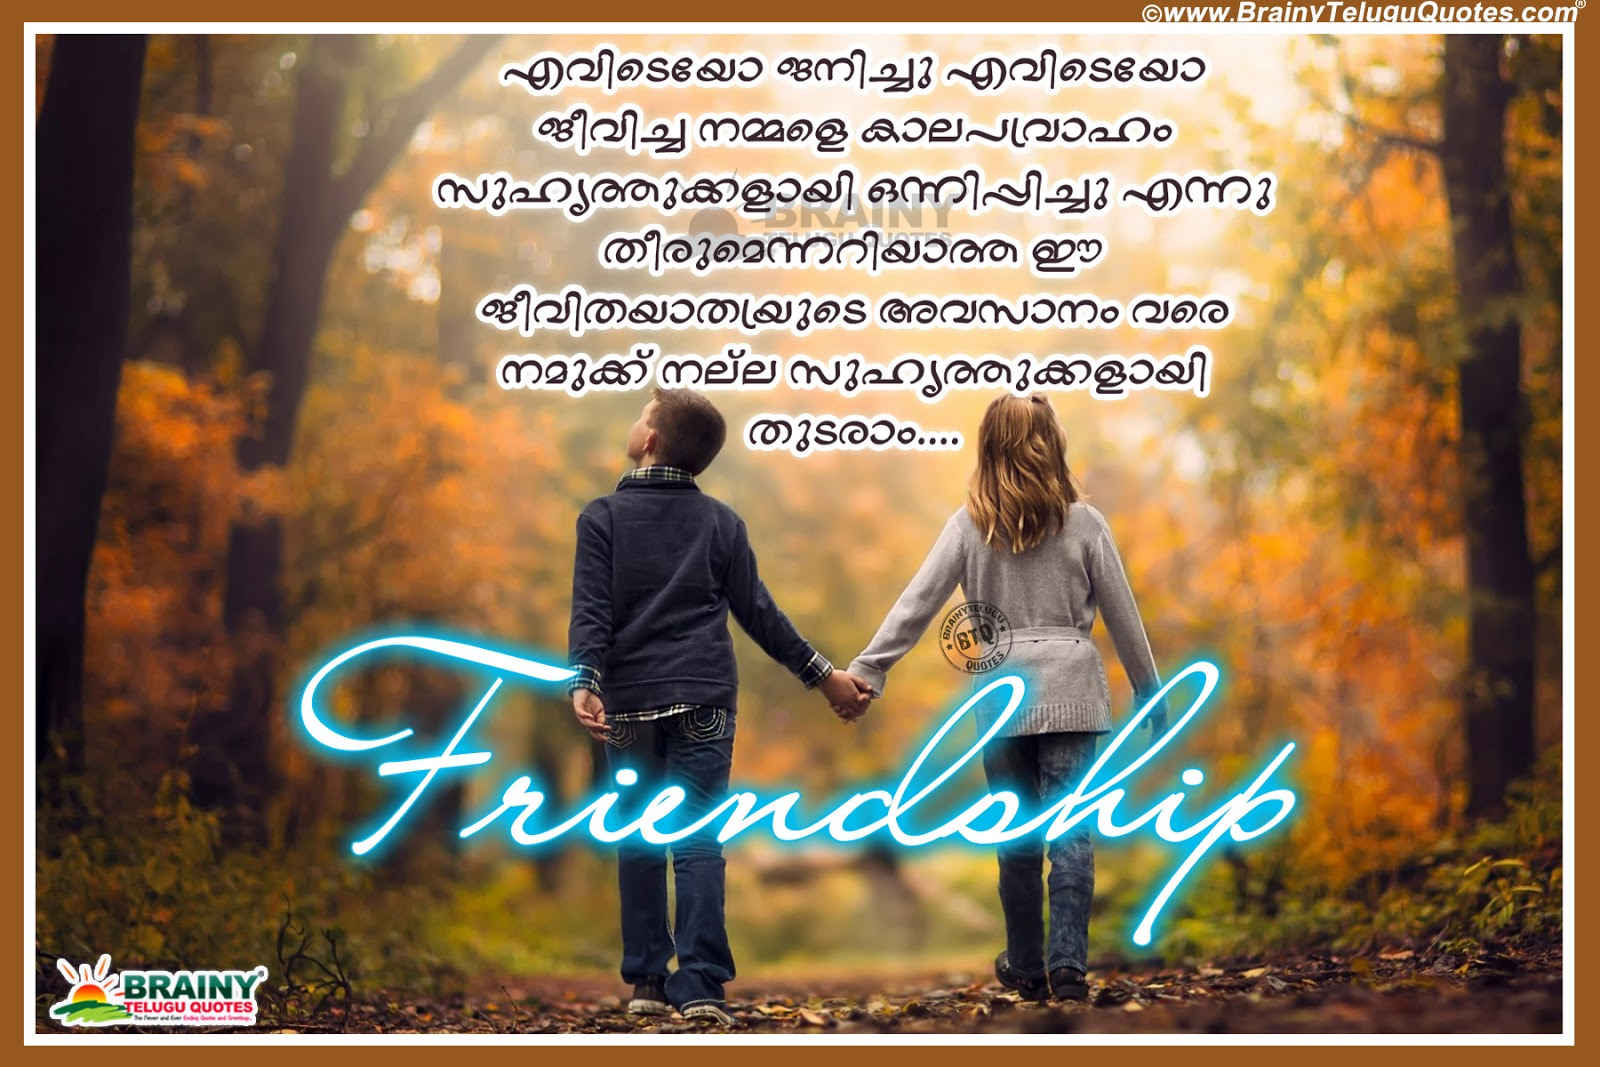 Malayalam Quotes About Friendship Hd Wallpapers With